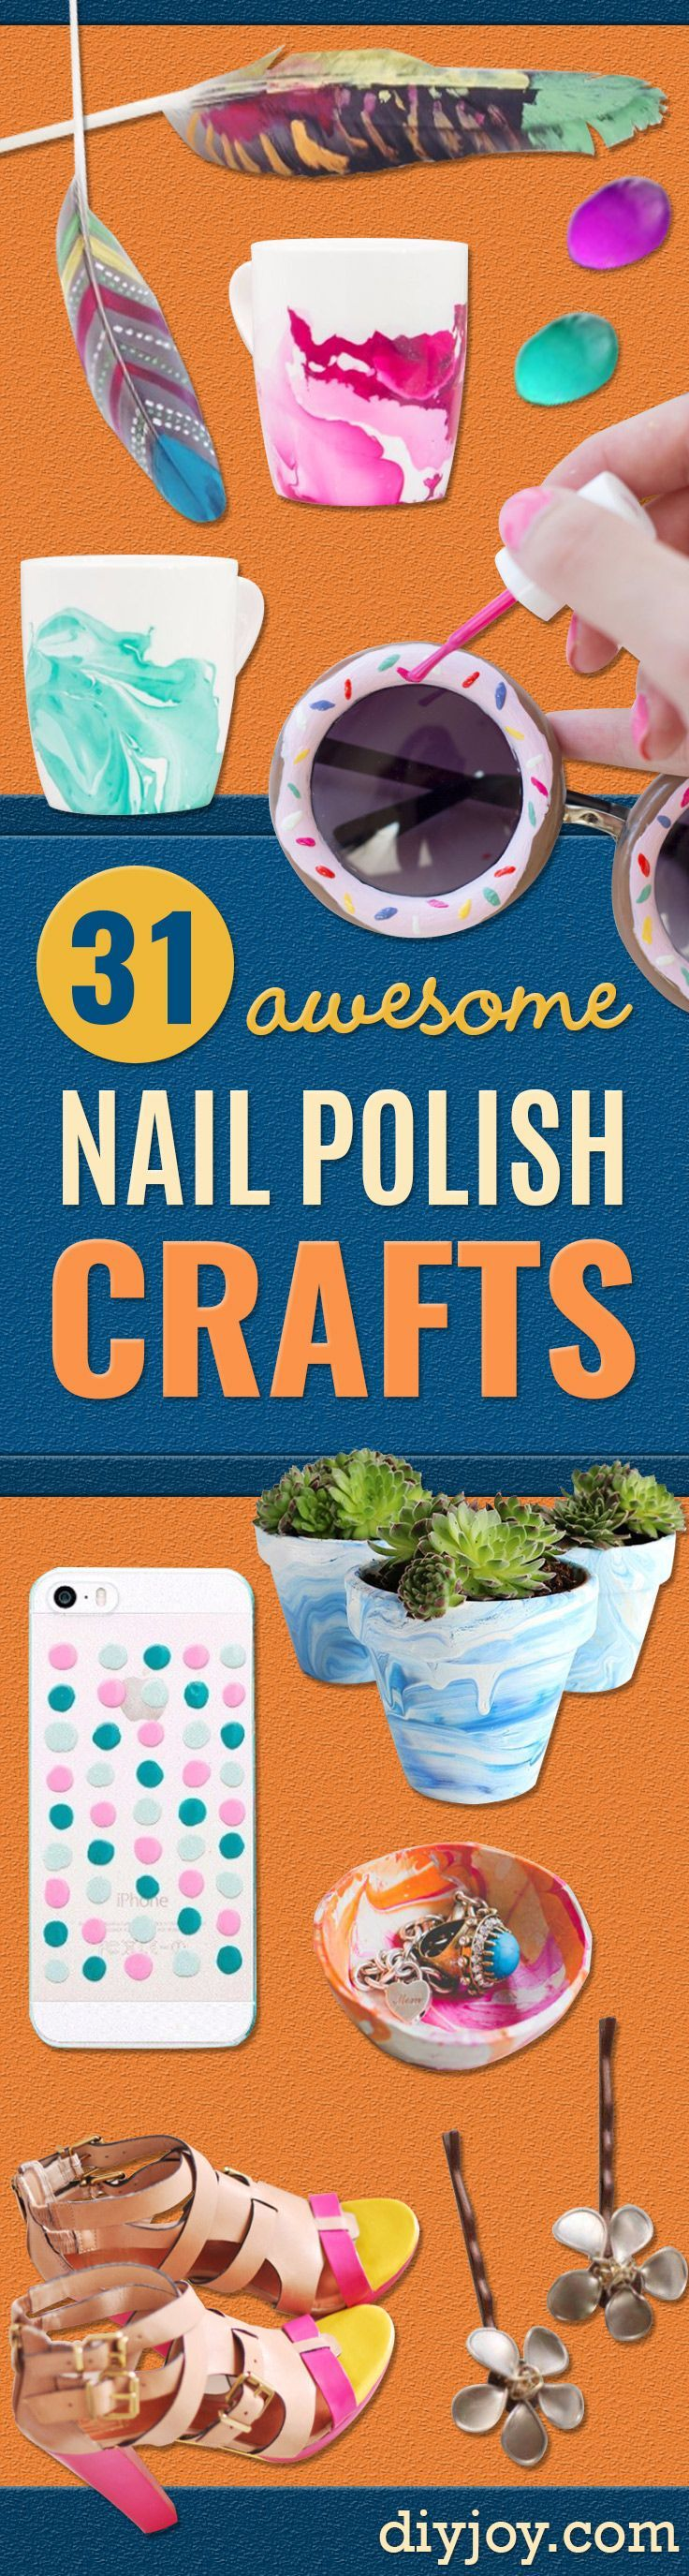 359 best cool diy ideas images on pinterest for Cool craft ideas for adults